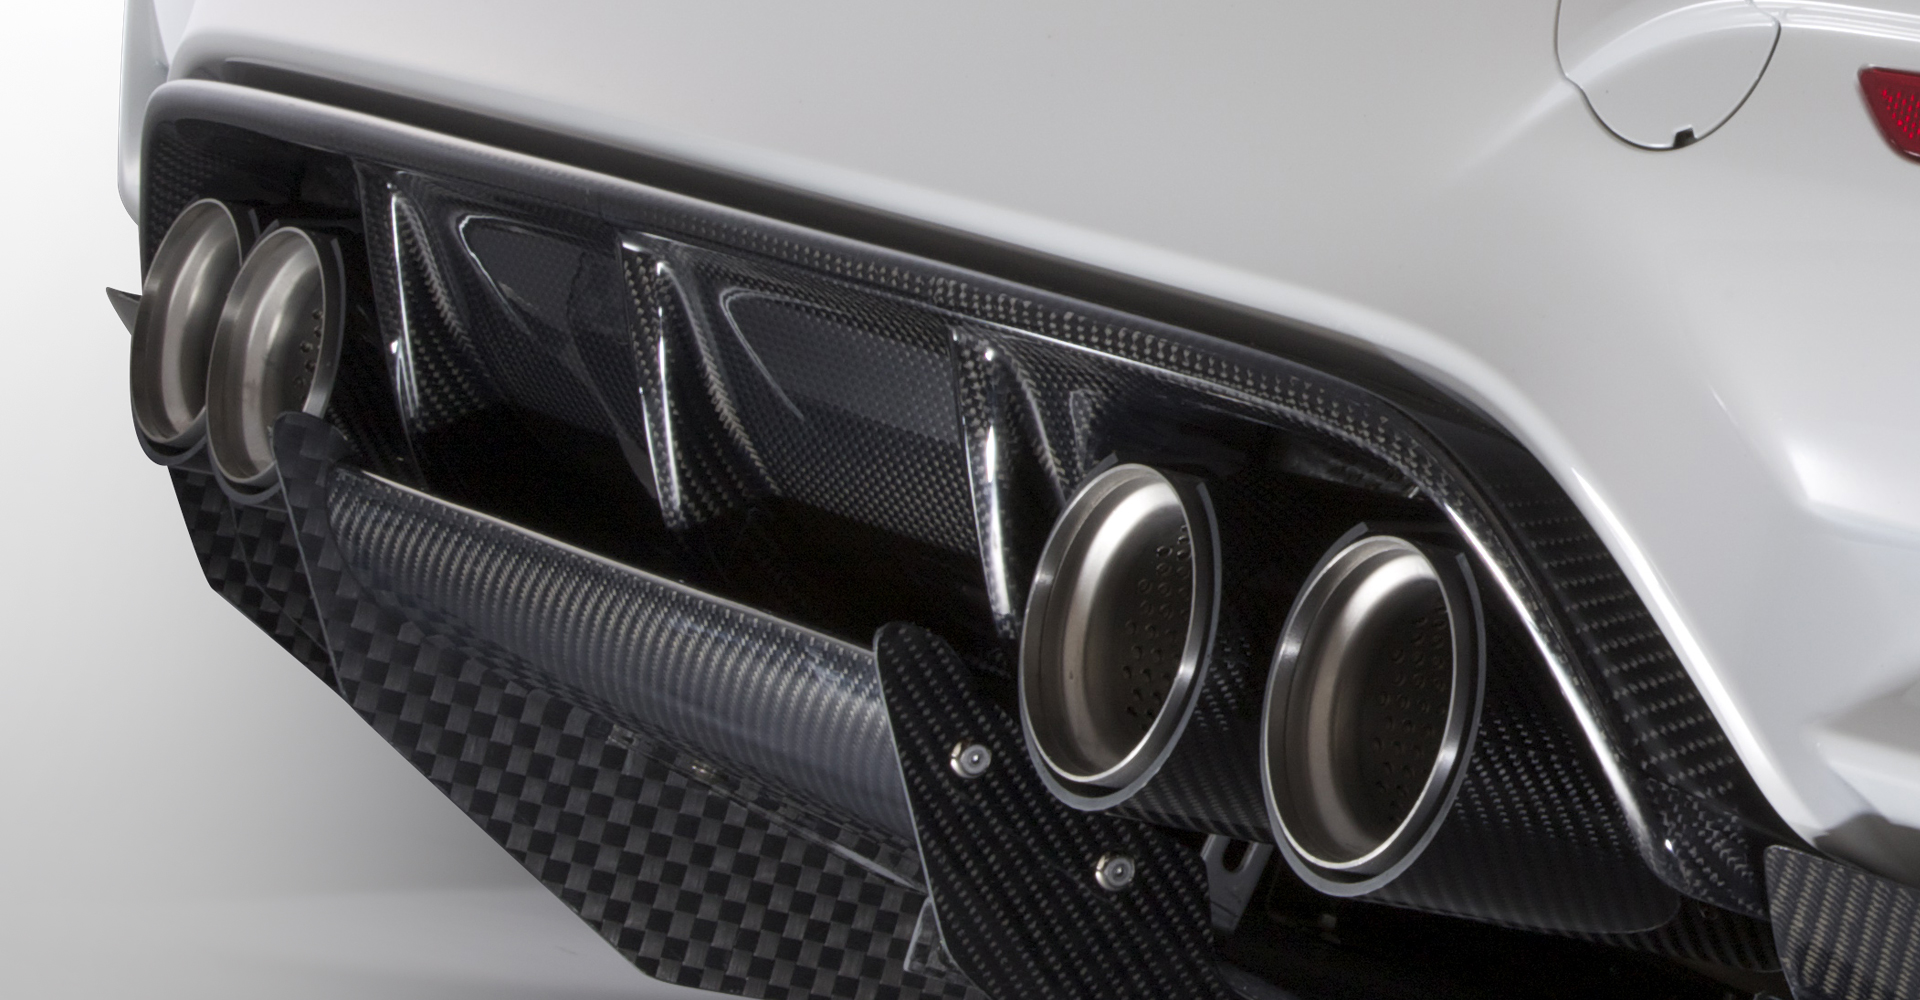 Vrs Bmw F82 M4 Rear Diffuser Skirt